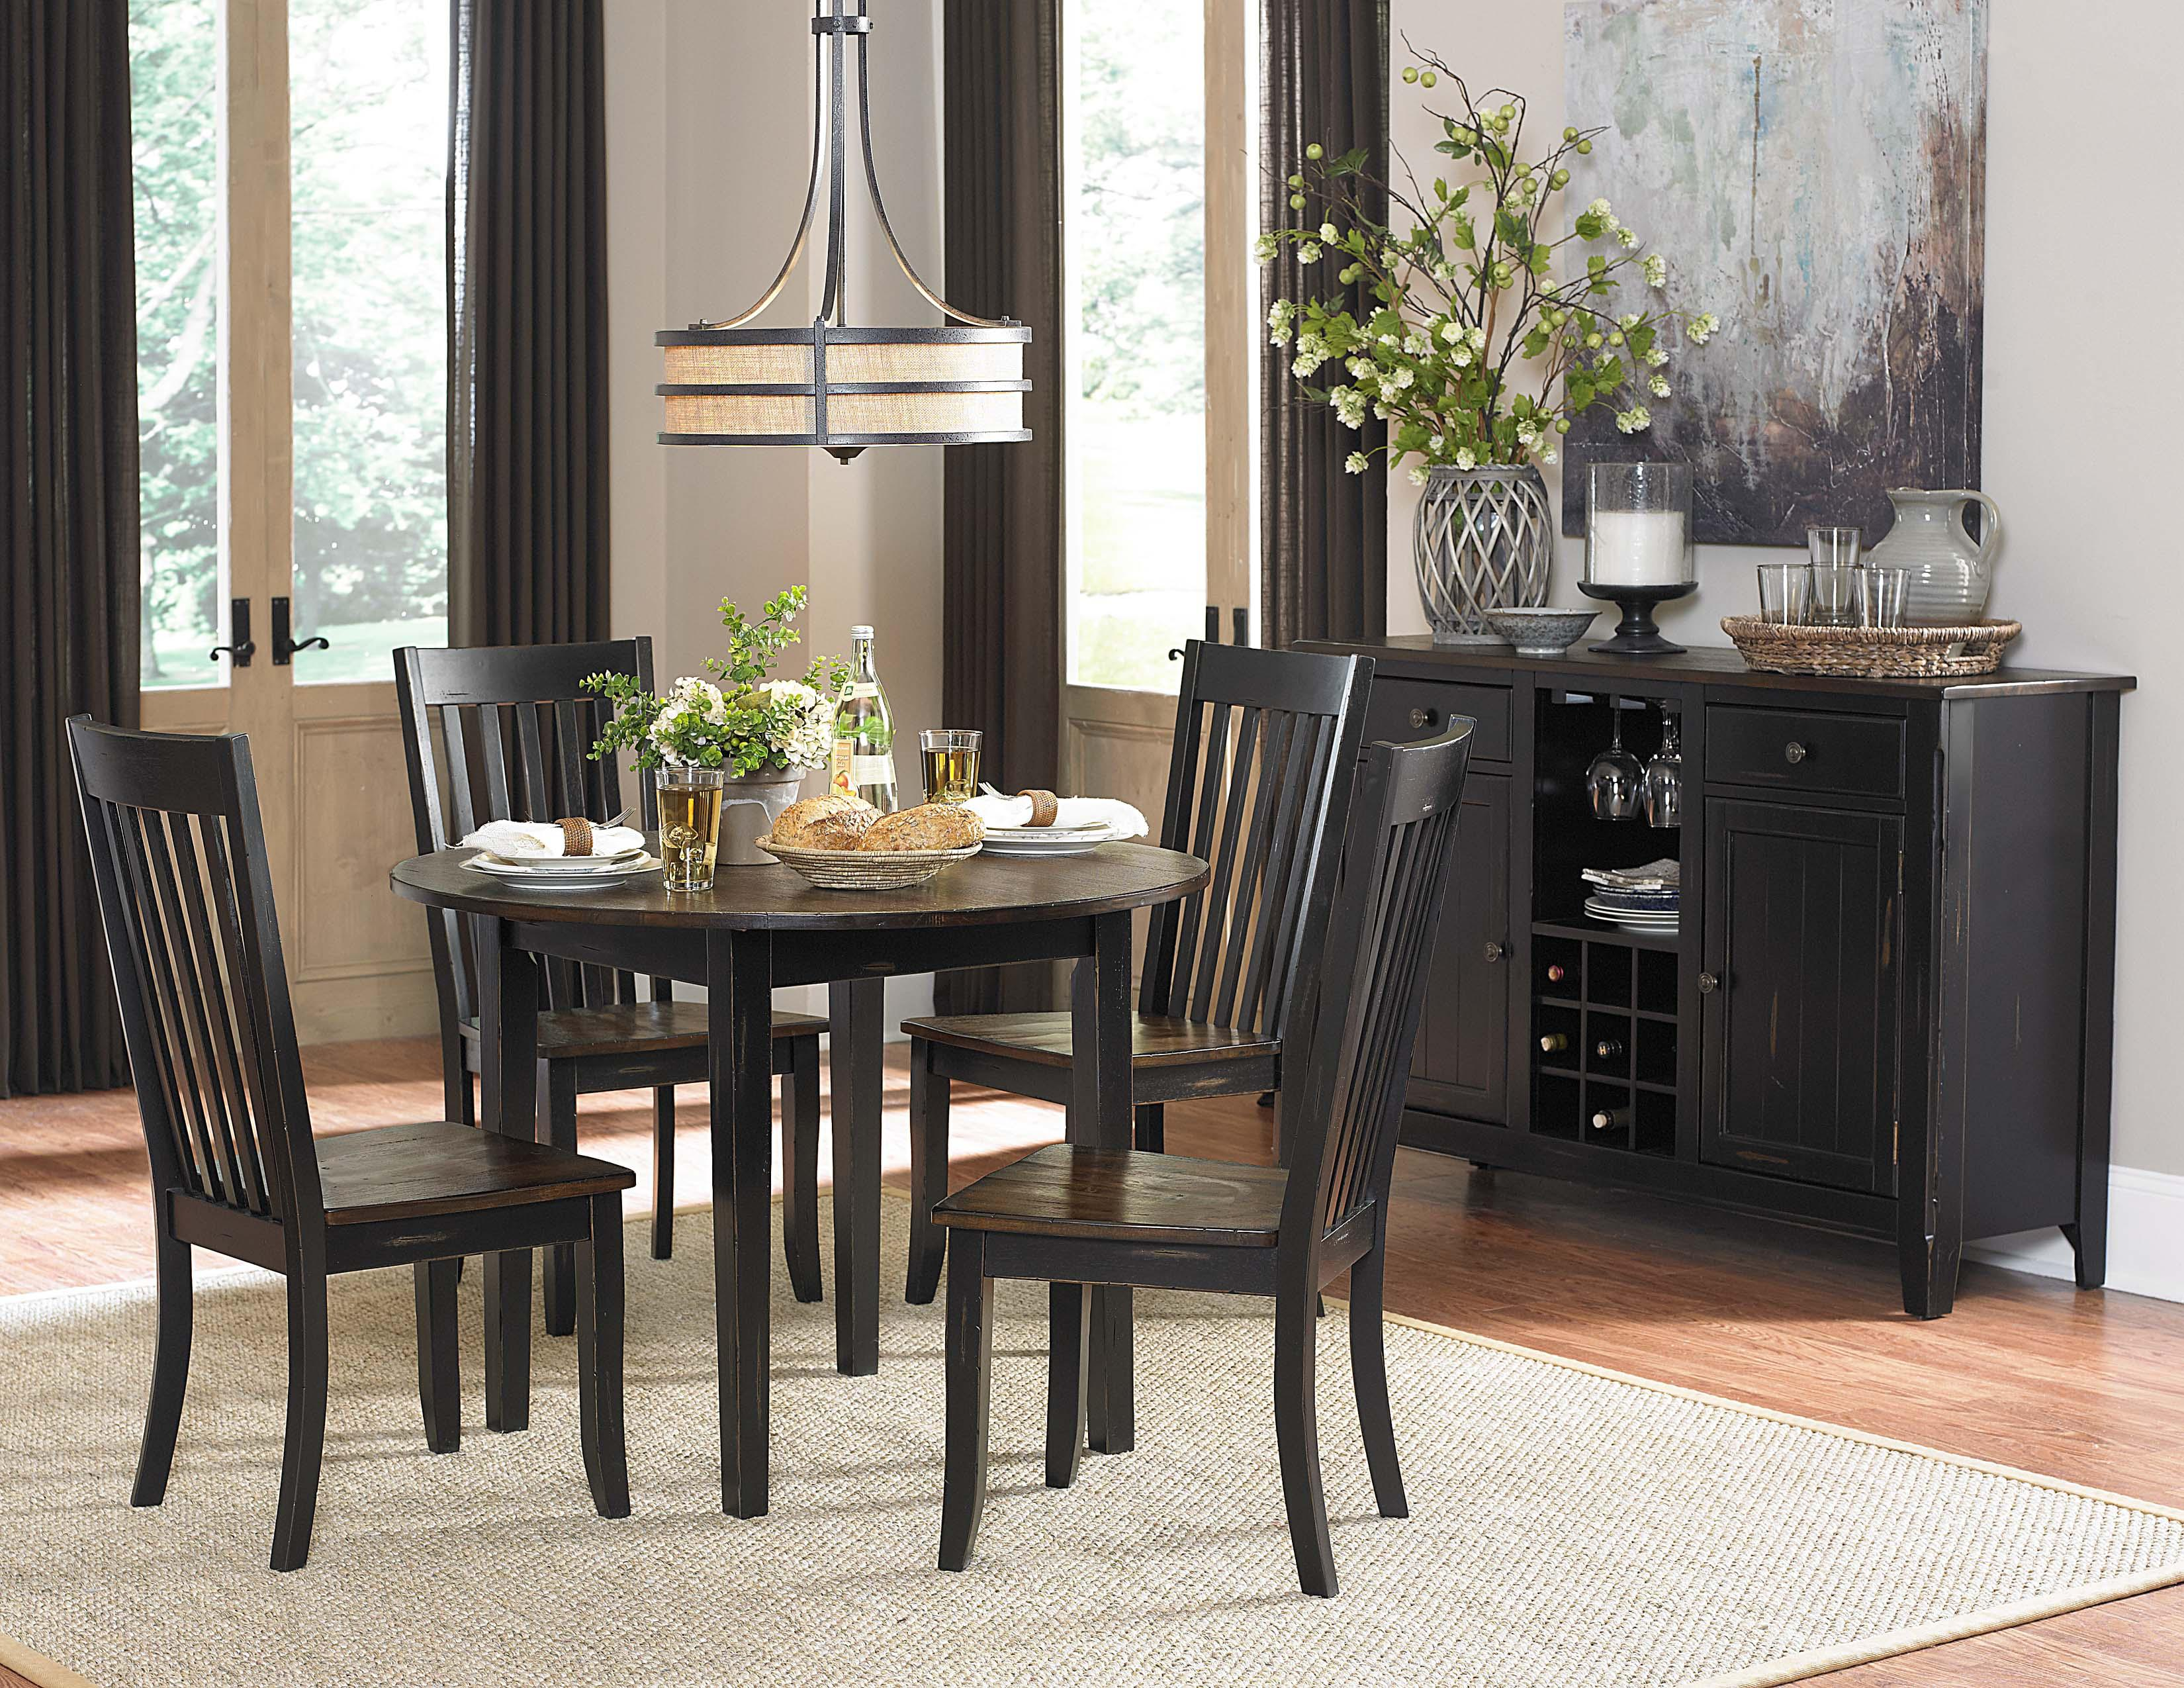 Homelegance Three Falls 5 Piece Dining Set with Round Drop Leaf Table    Fisher Home Furnishings   Dining 5 Piece SetHomelegance Three Falls 5 Piece Dining Set with Round Drop Leaf  . Round Dining Room Table Set For 8. Home Design Ideas